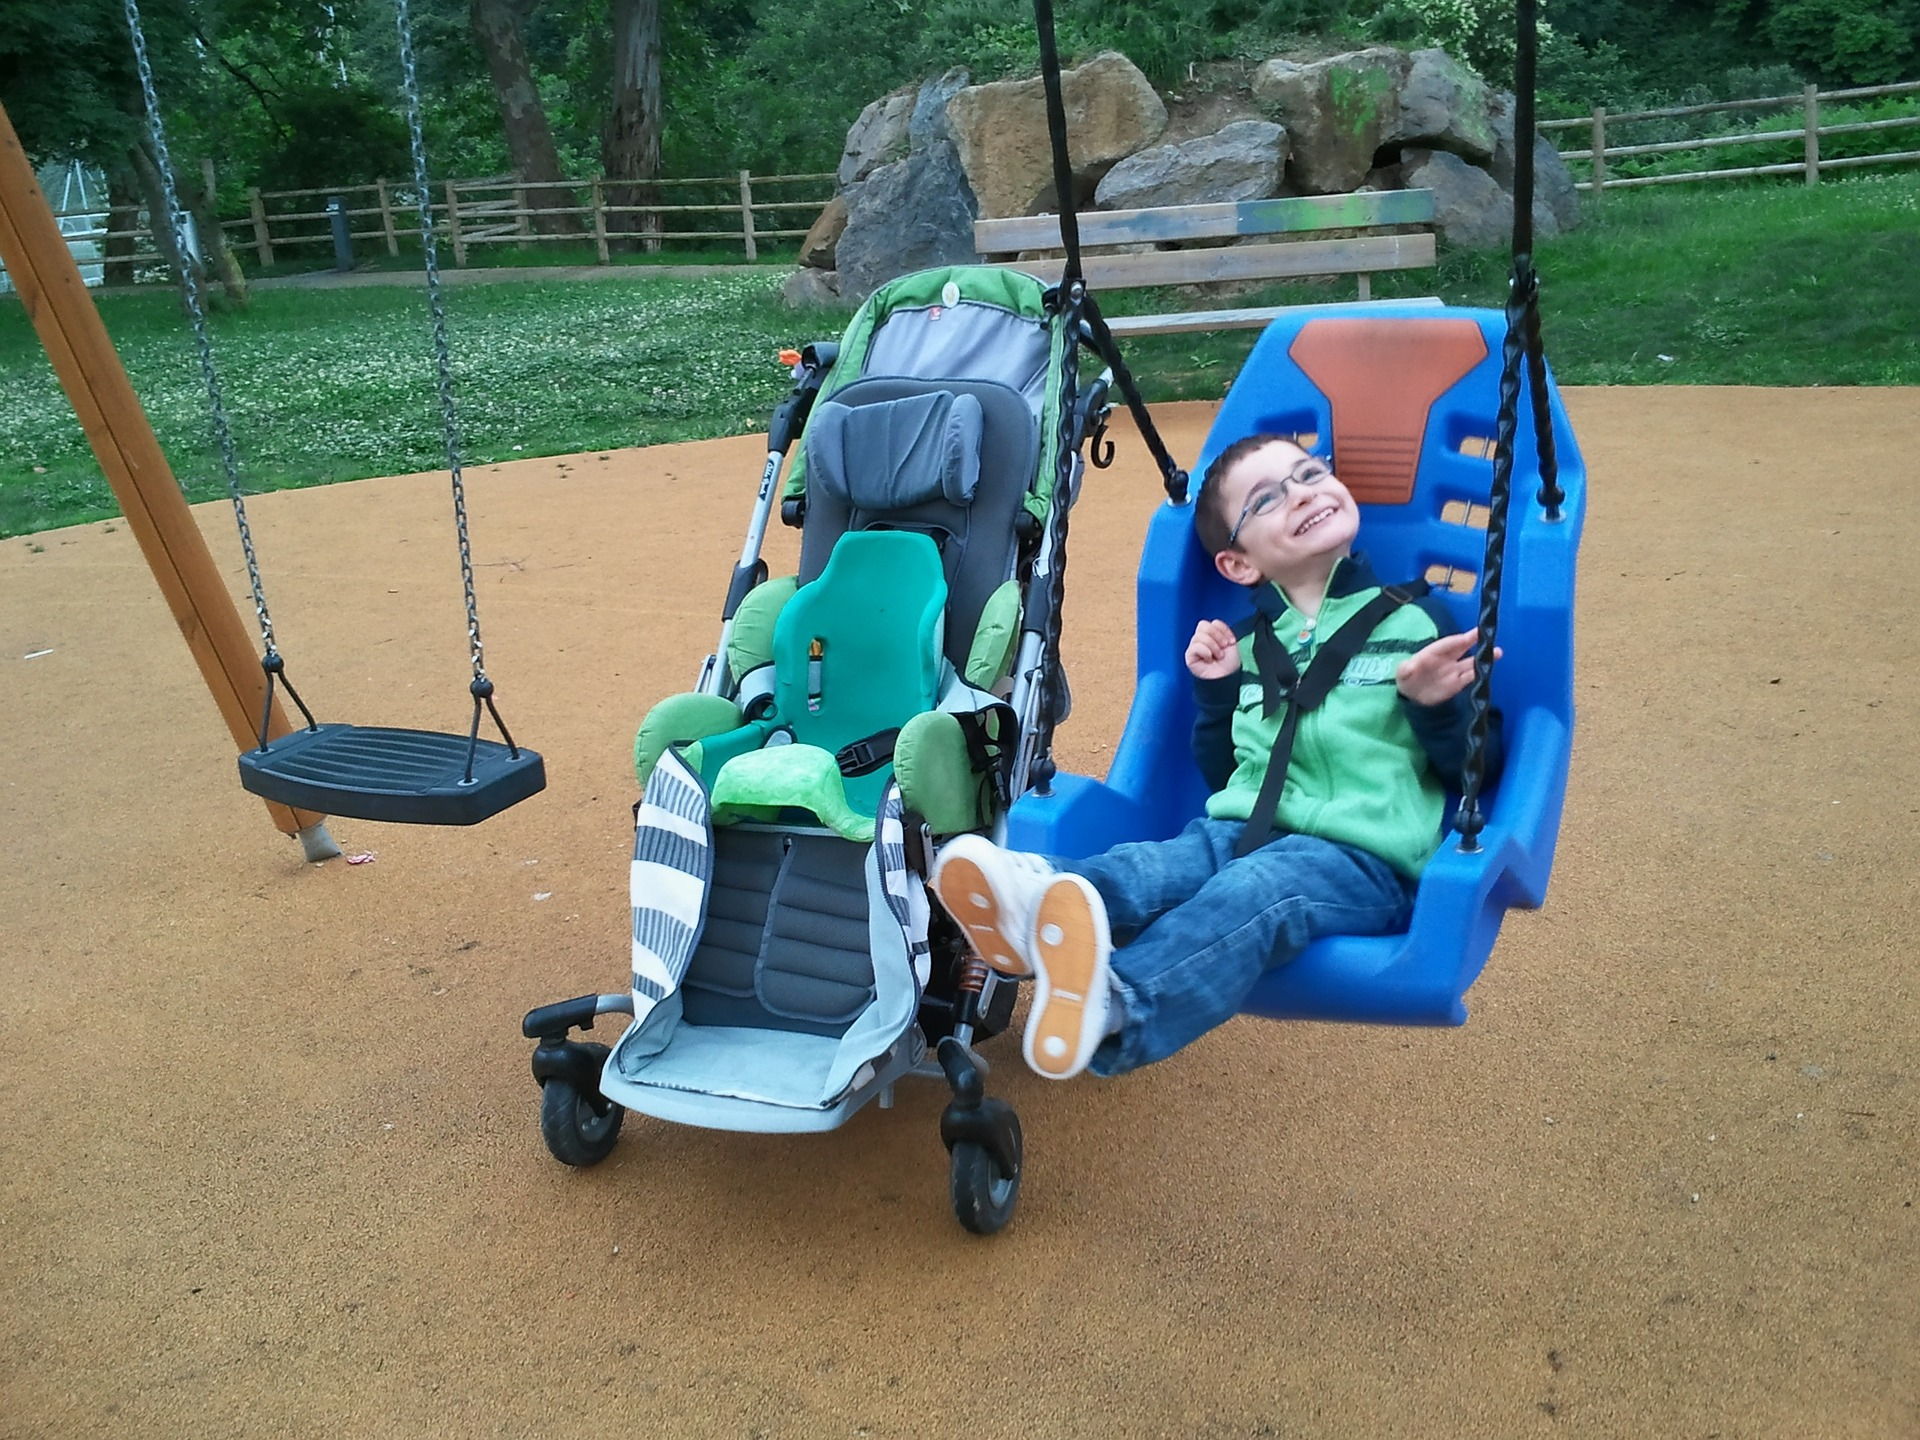 Disabled child smiling in a playground swing